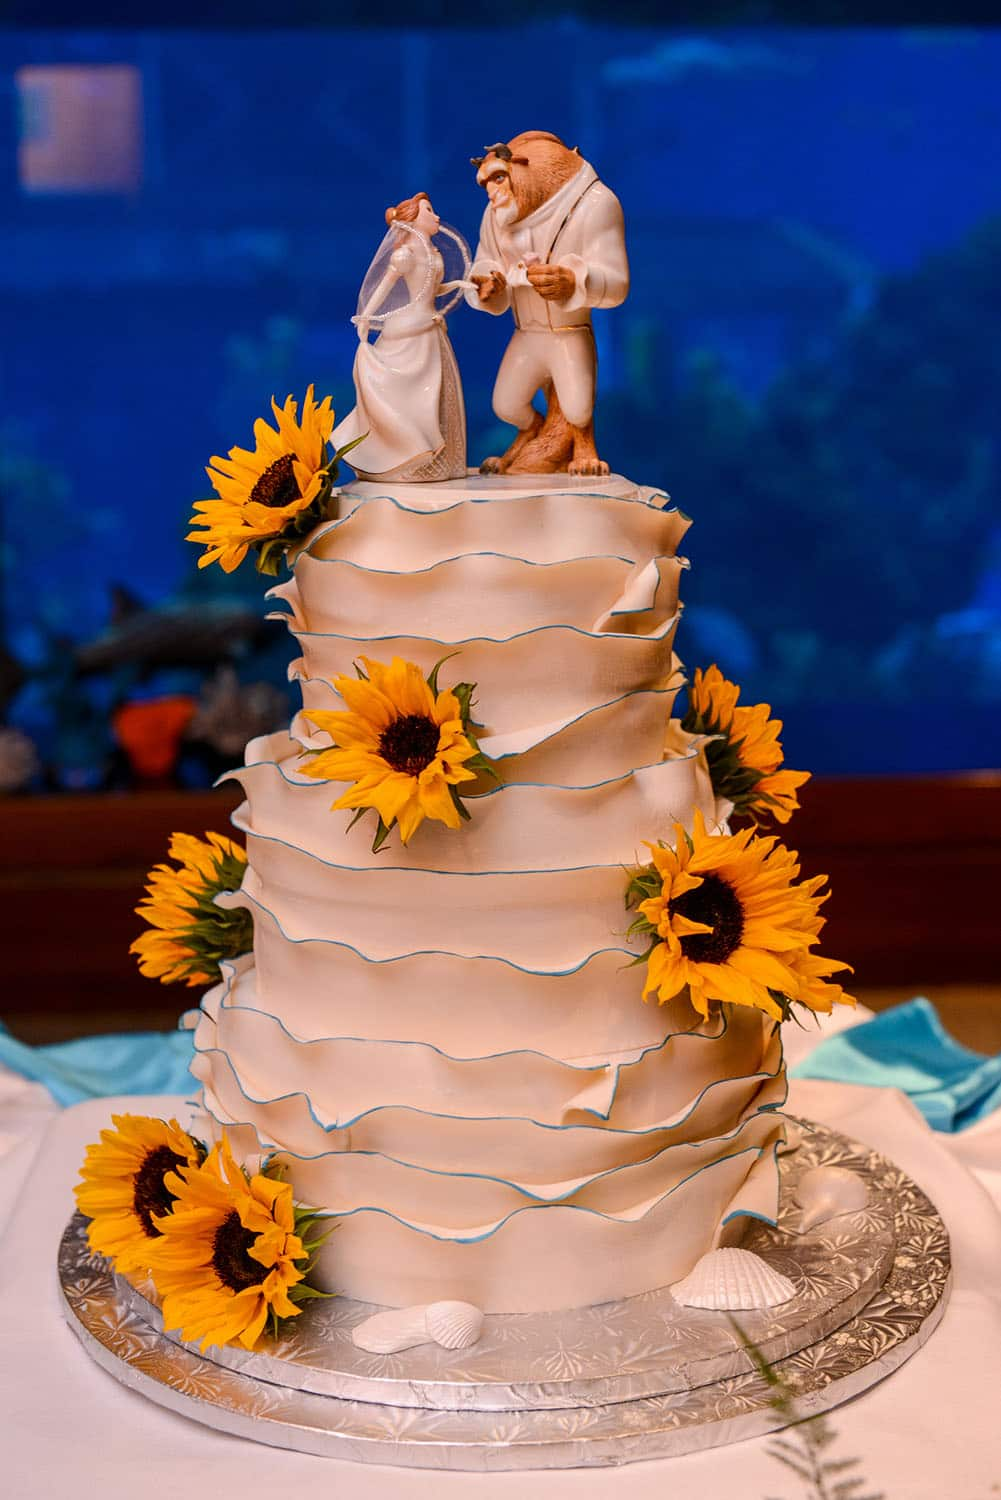 Wedding Cake Wednesday Beauty and the Beast Sunflowers Disney